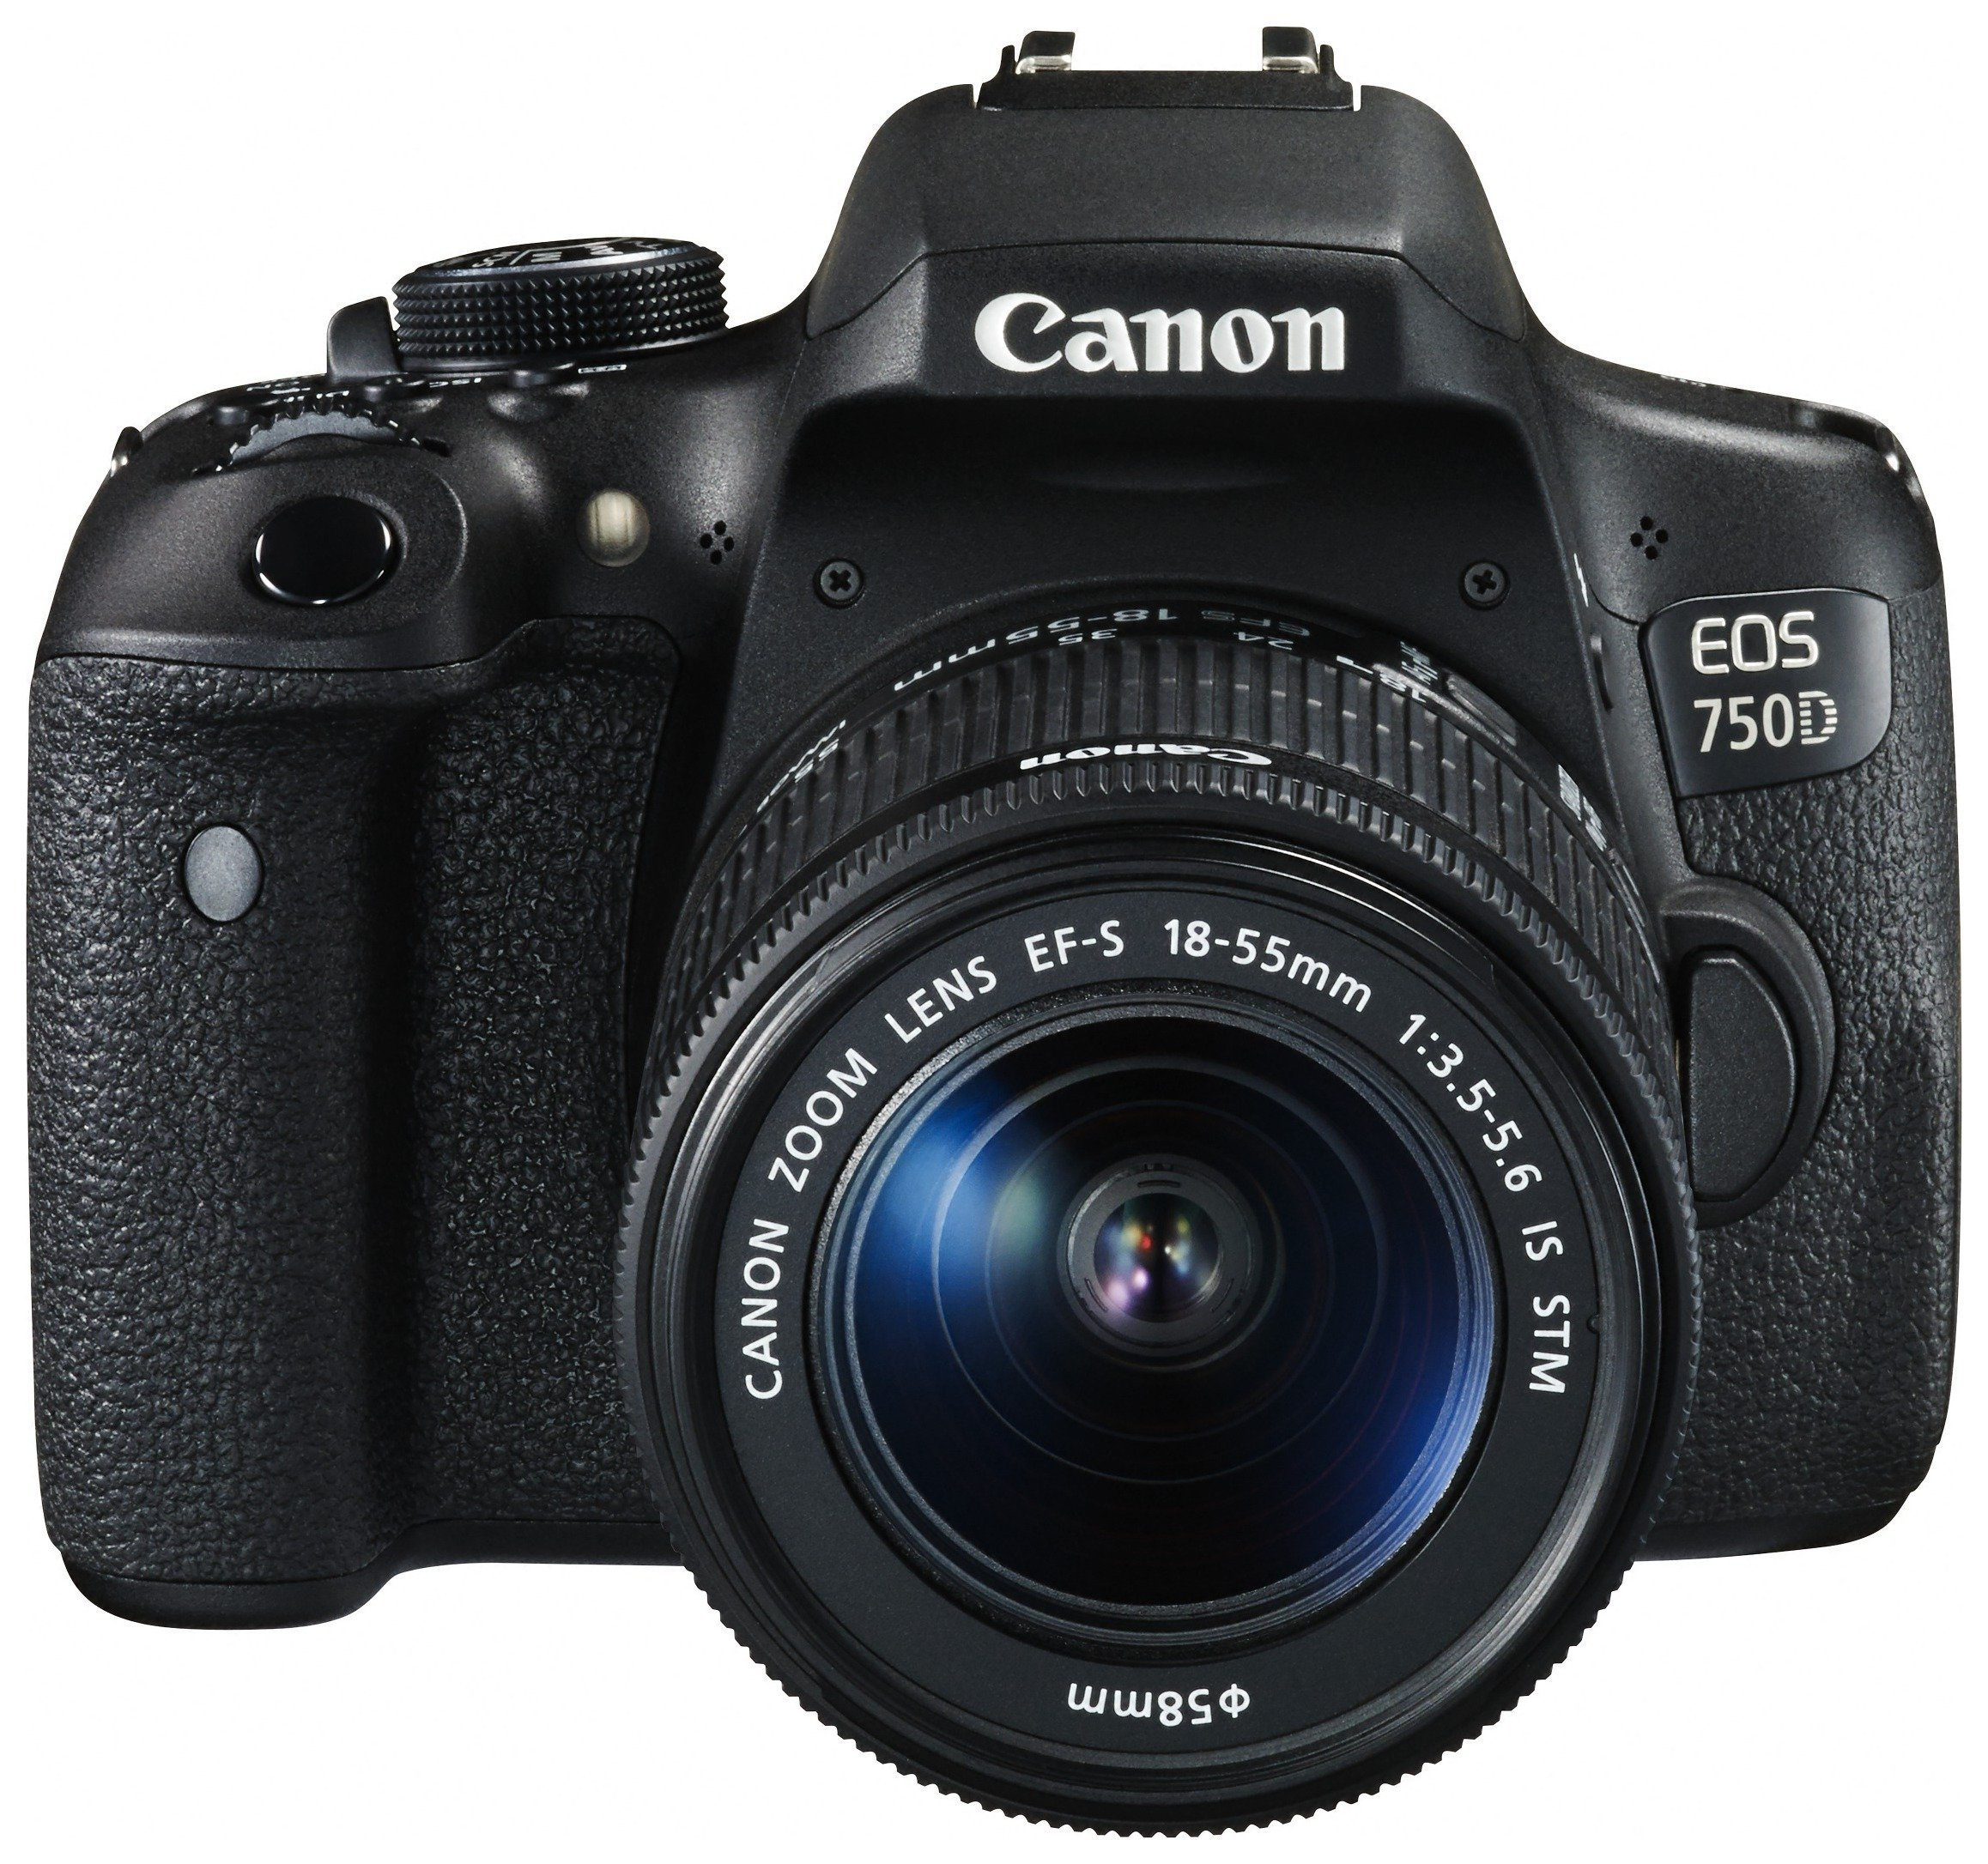 Image of Canon EOS 750D DSLR Camera with 18-55mm Lens